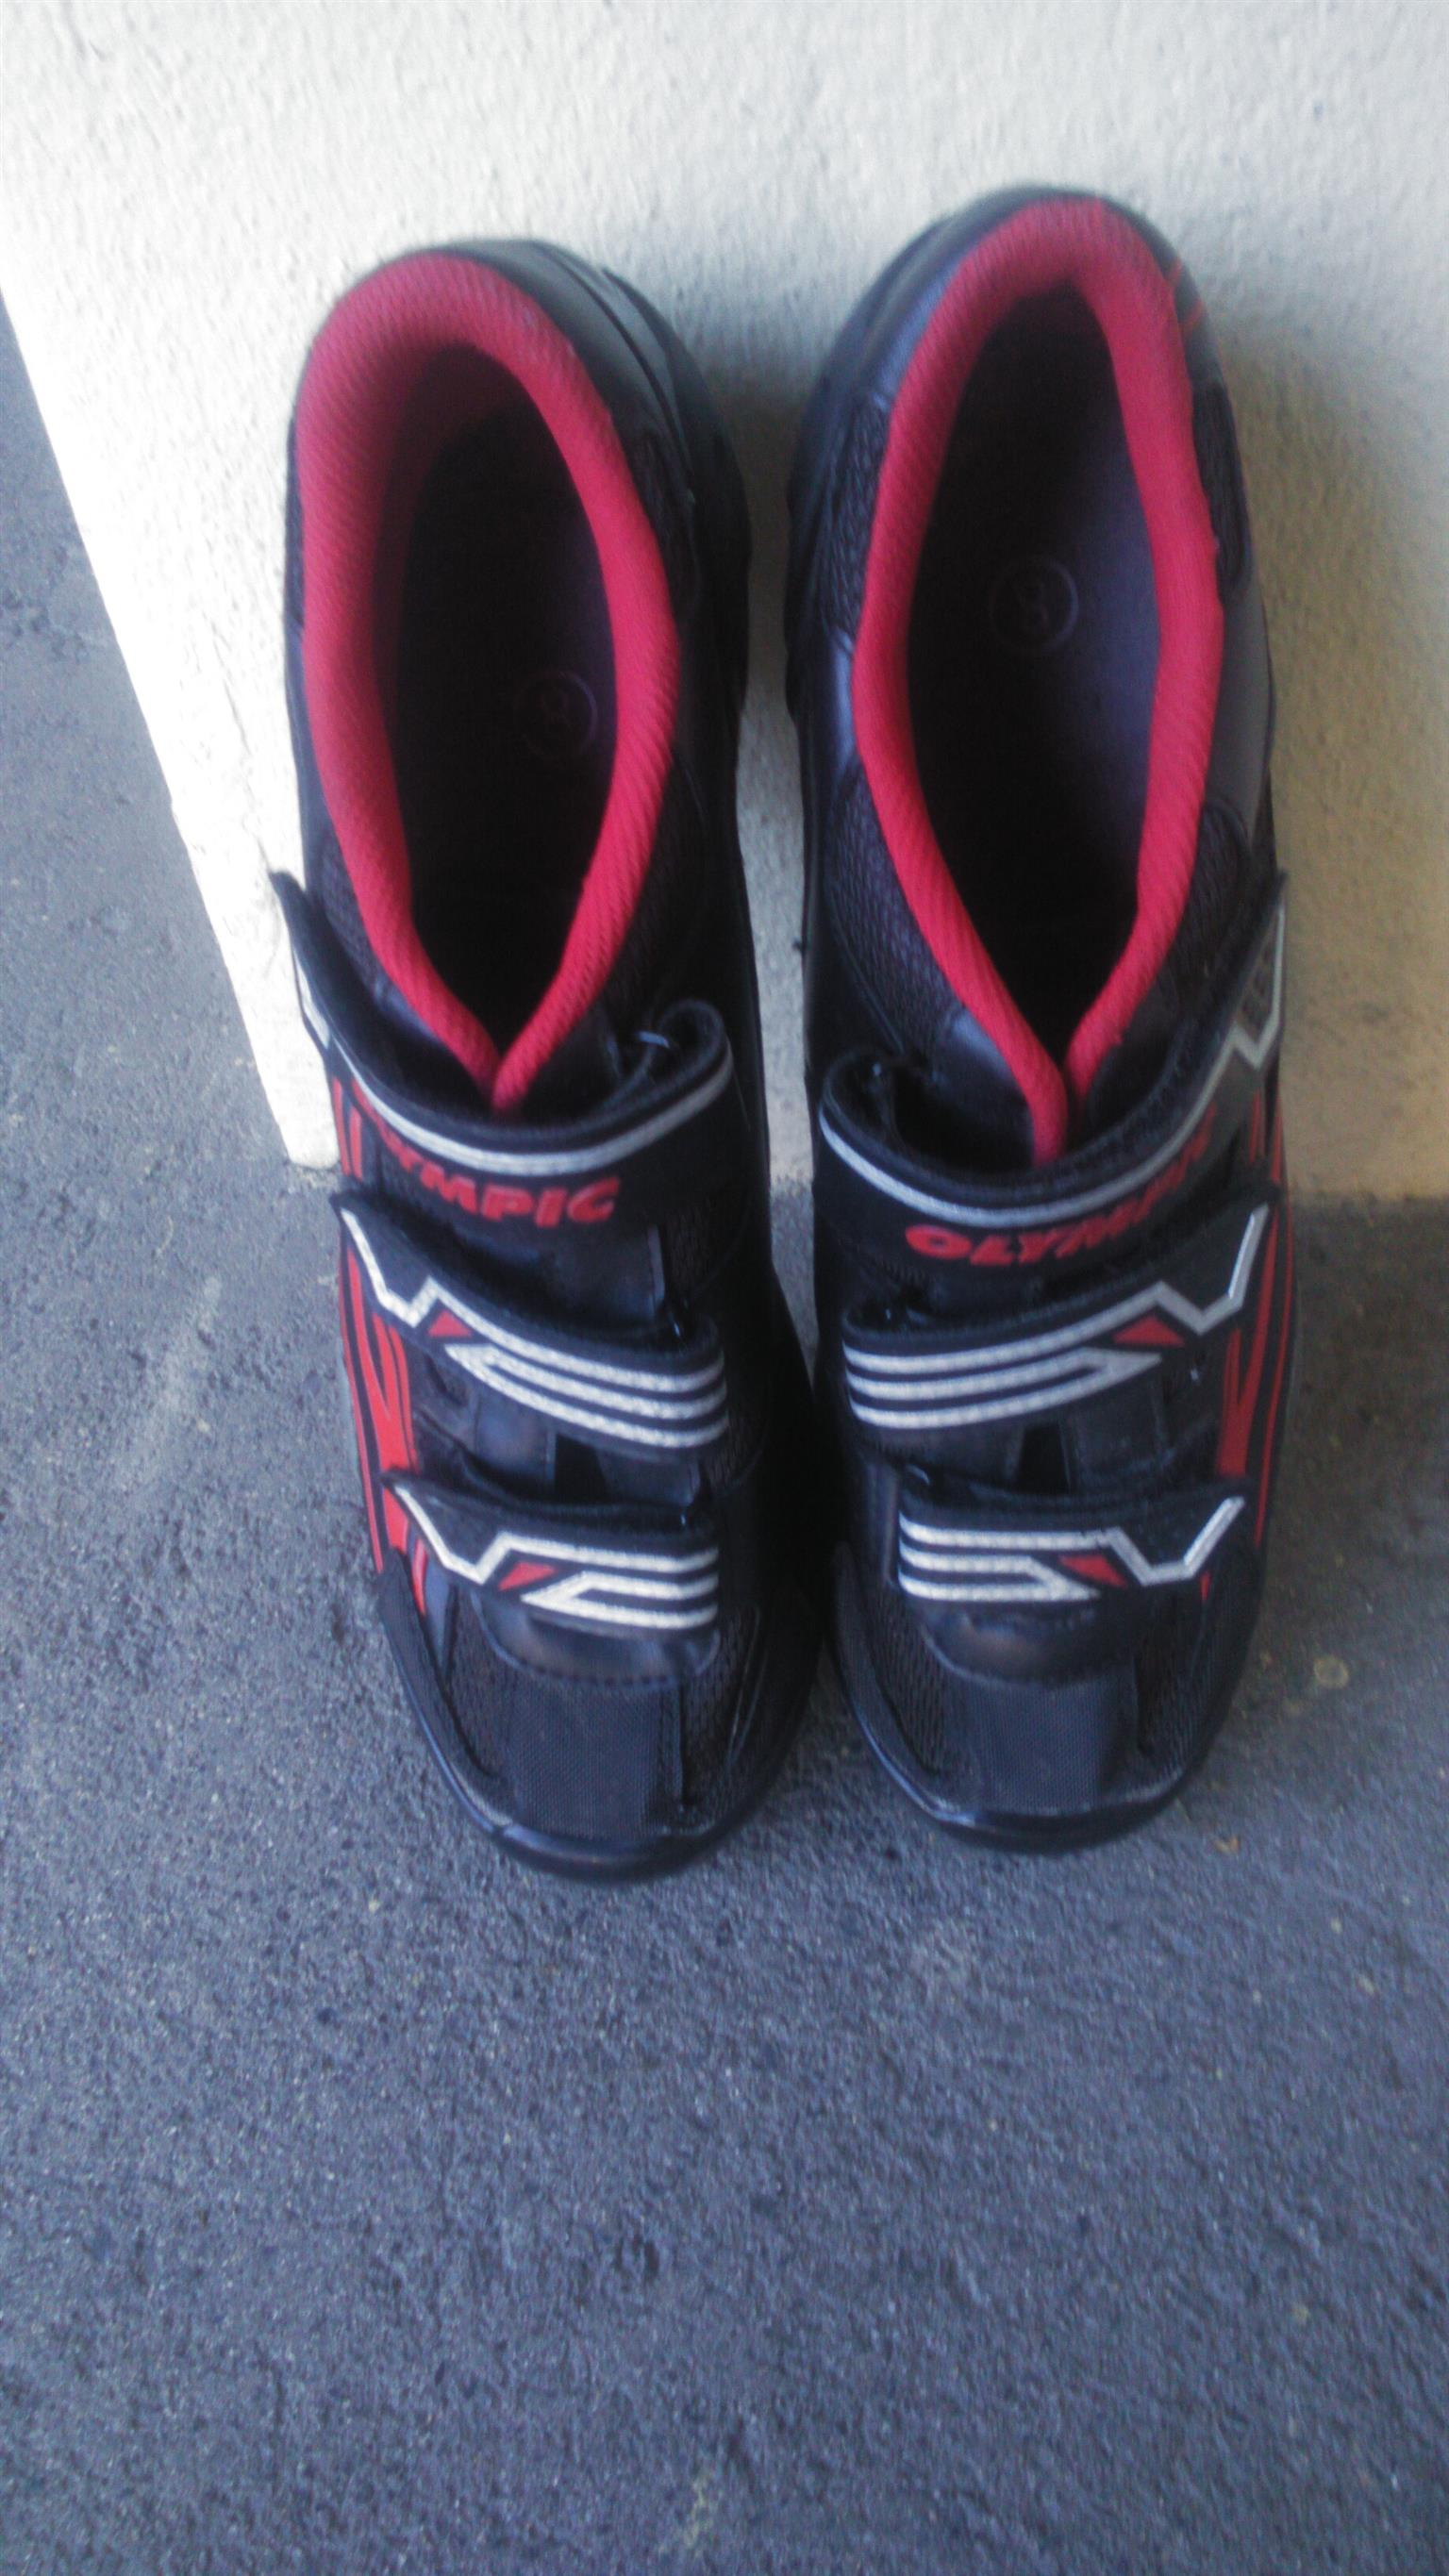 Olympic Cleat Cycling Shoes